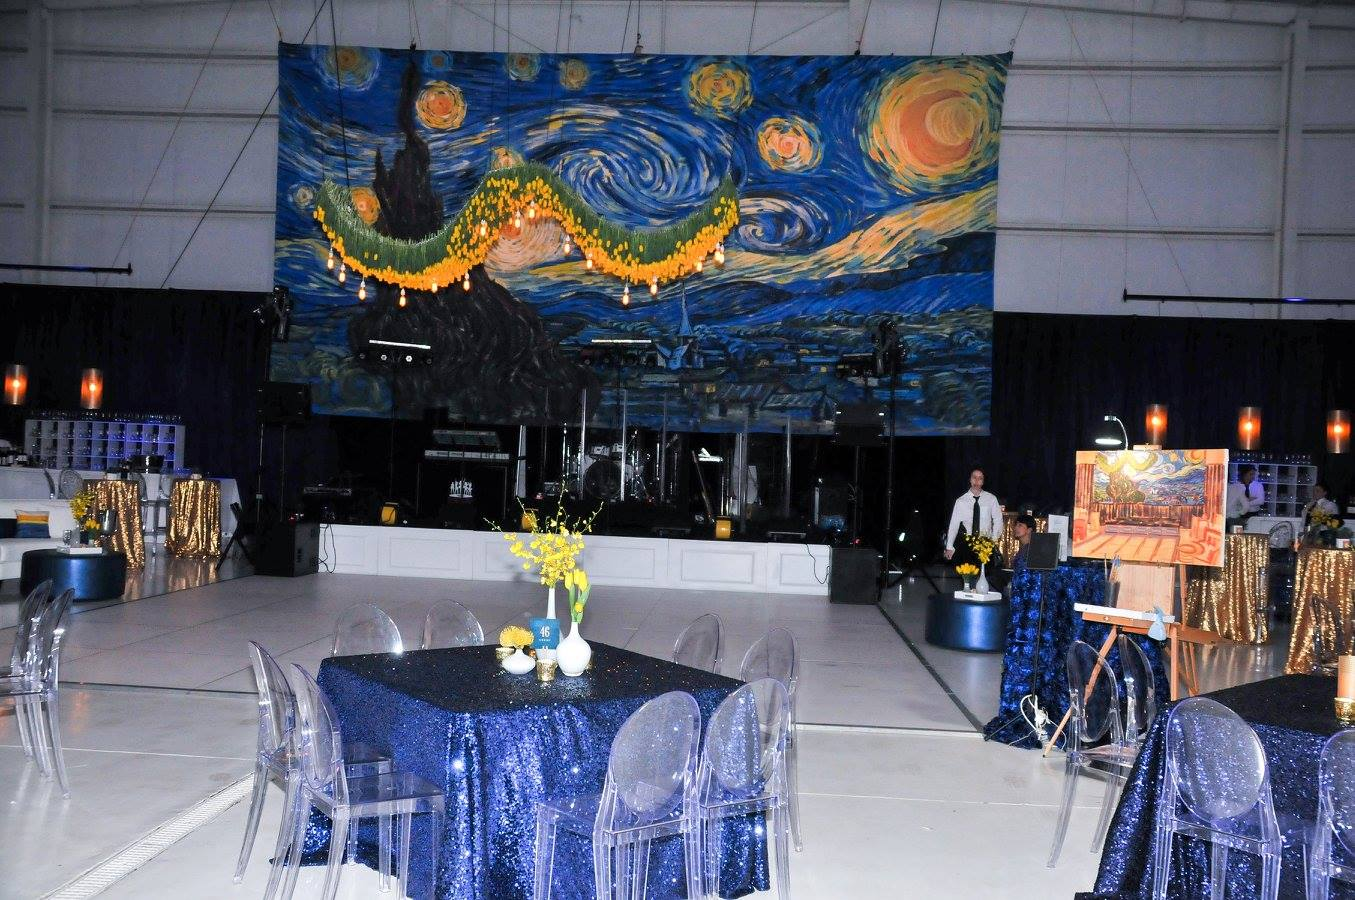 van-gogh-themed-gala-wilmington-nc-hanging-tulip-floral-instalation